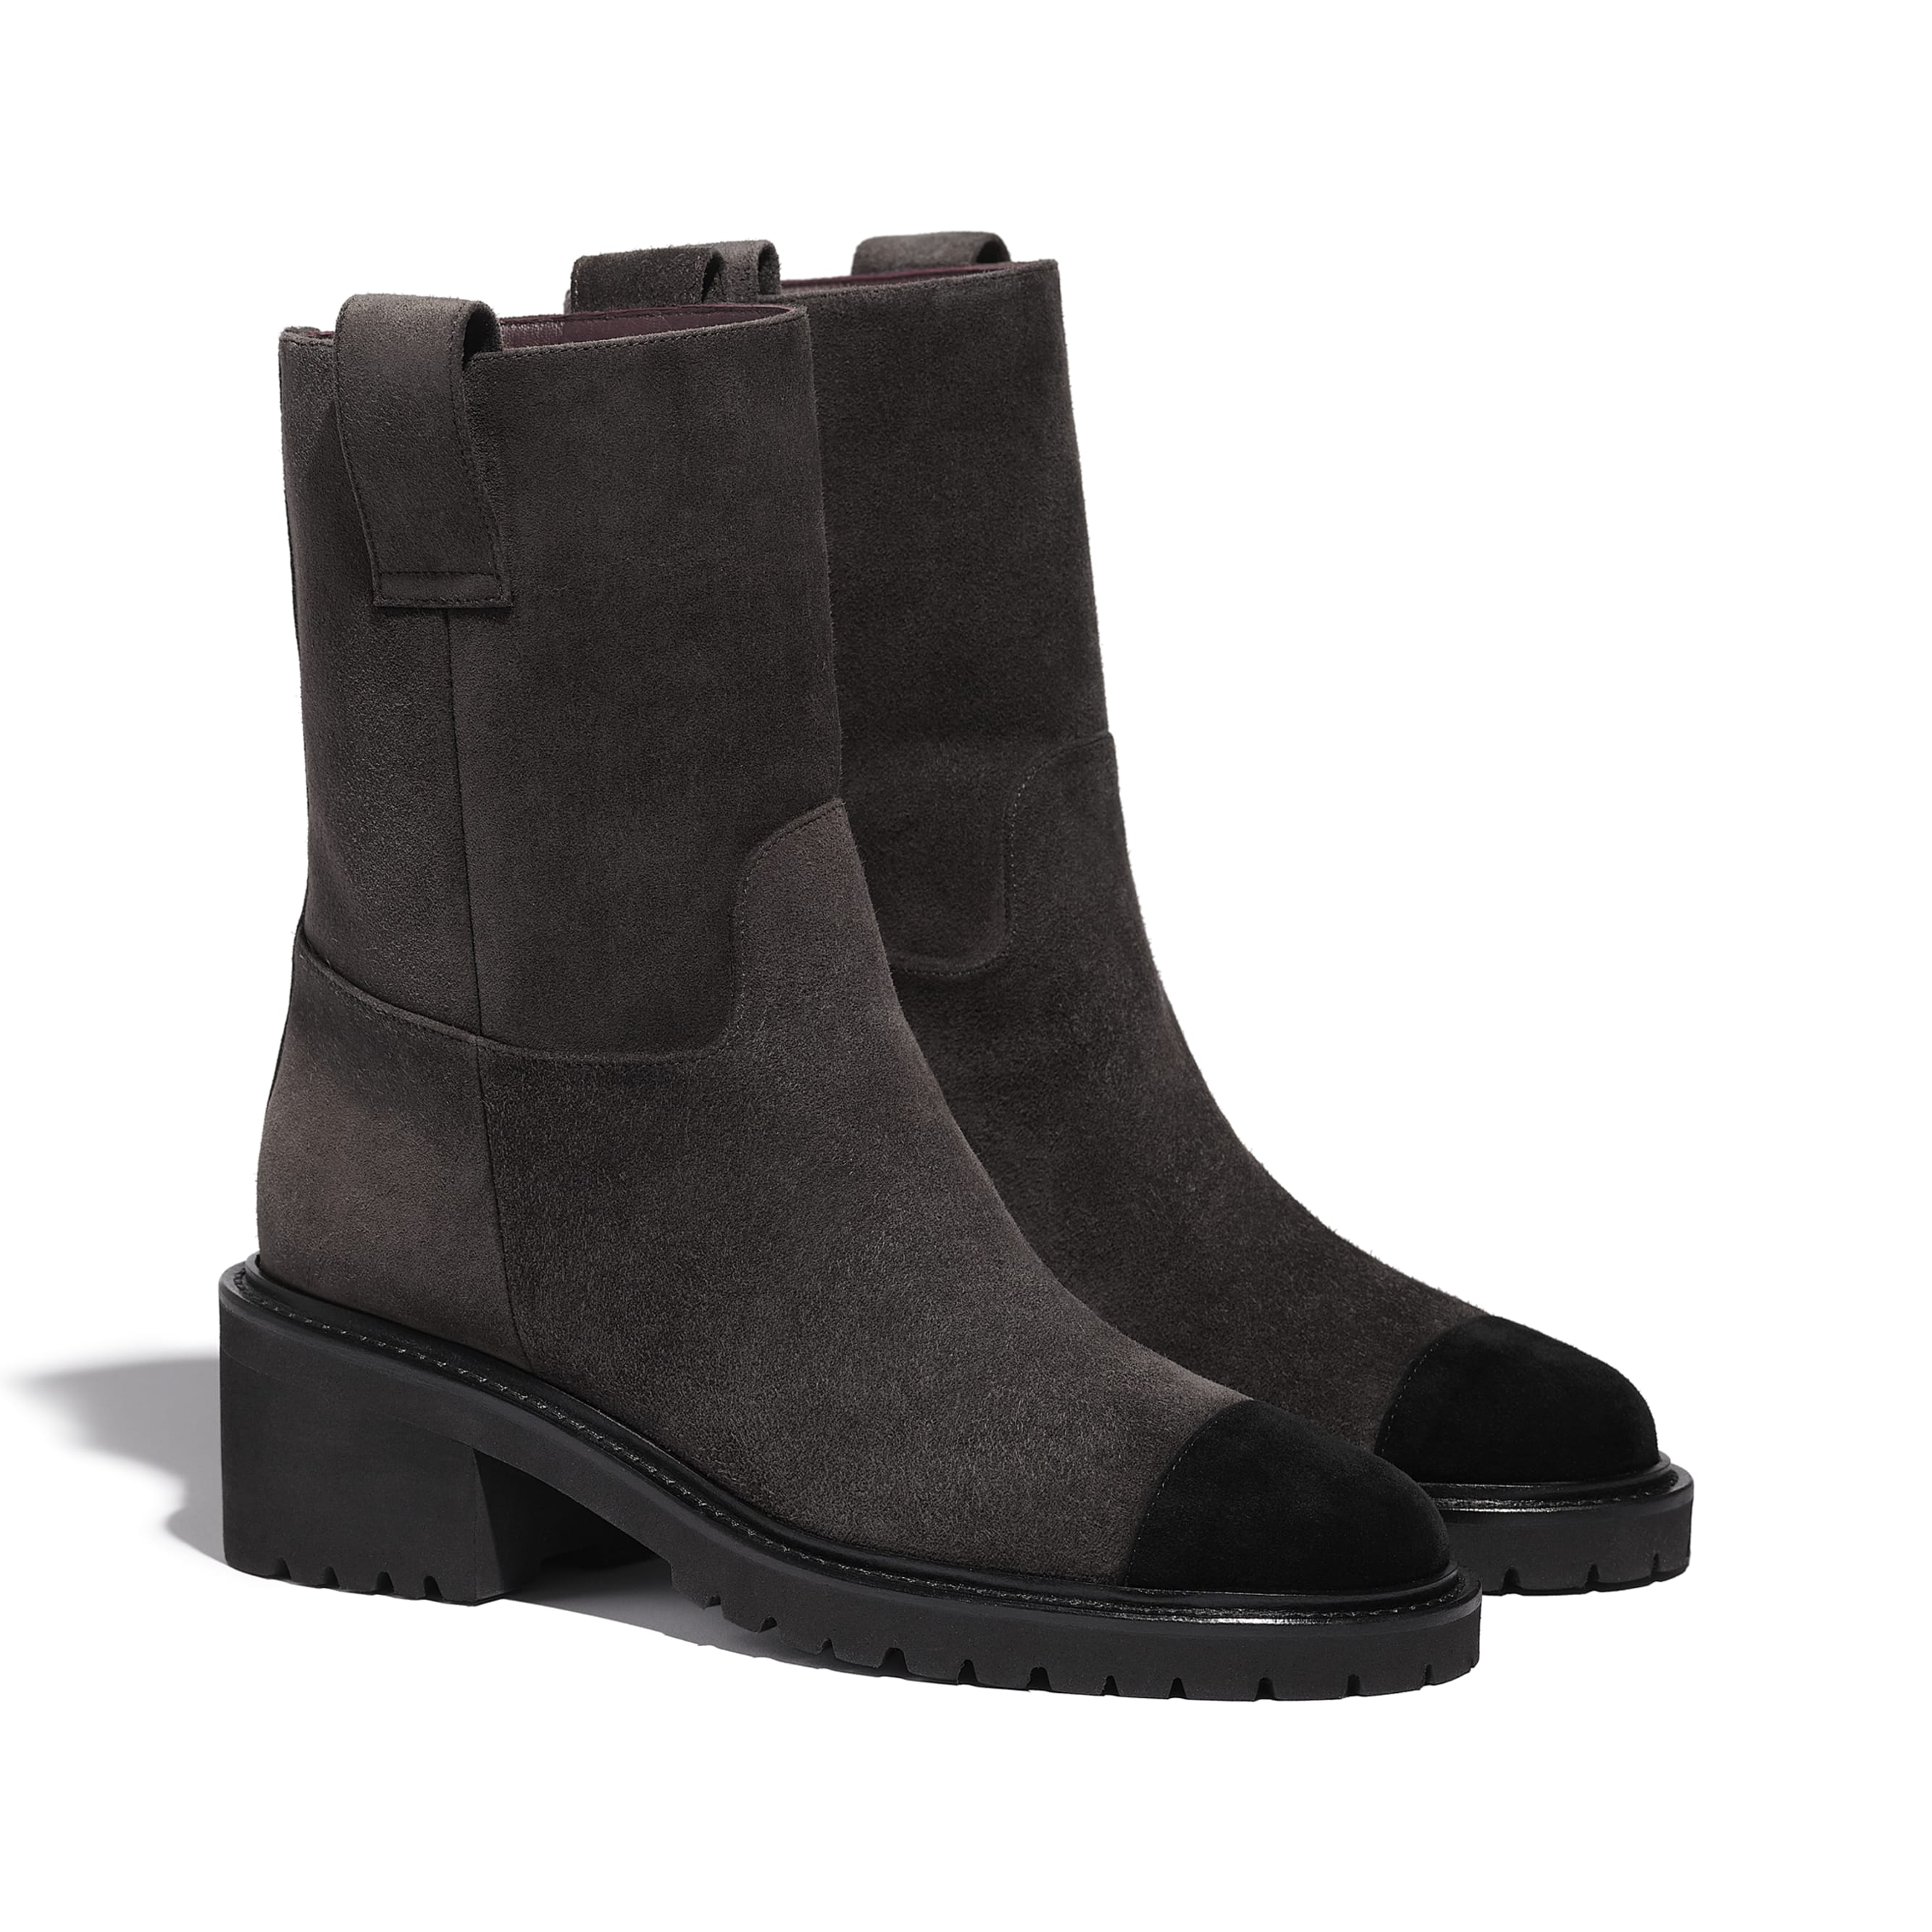 Ankle Boots - Brown & Black - Suede Calfskin - CHANEL - Alternative view - see standard sized version